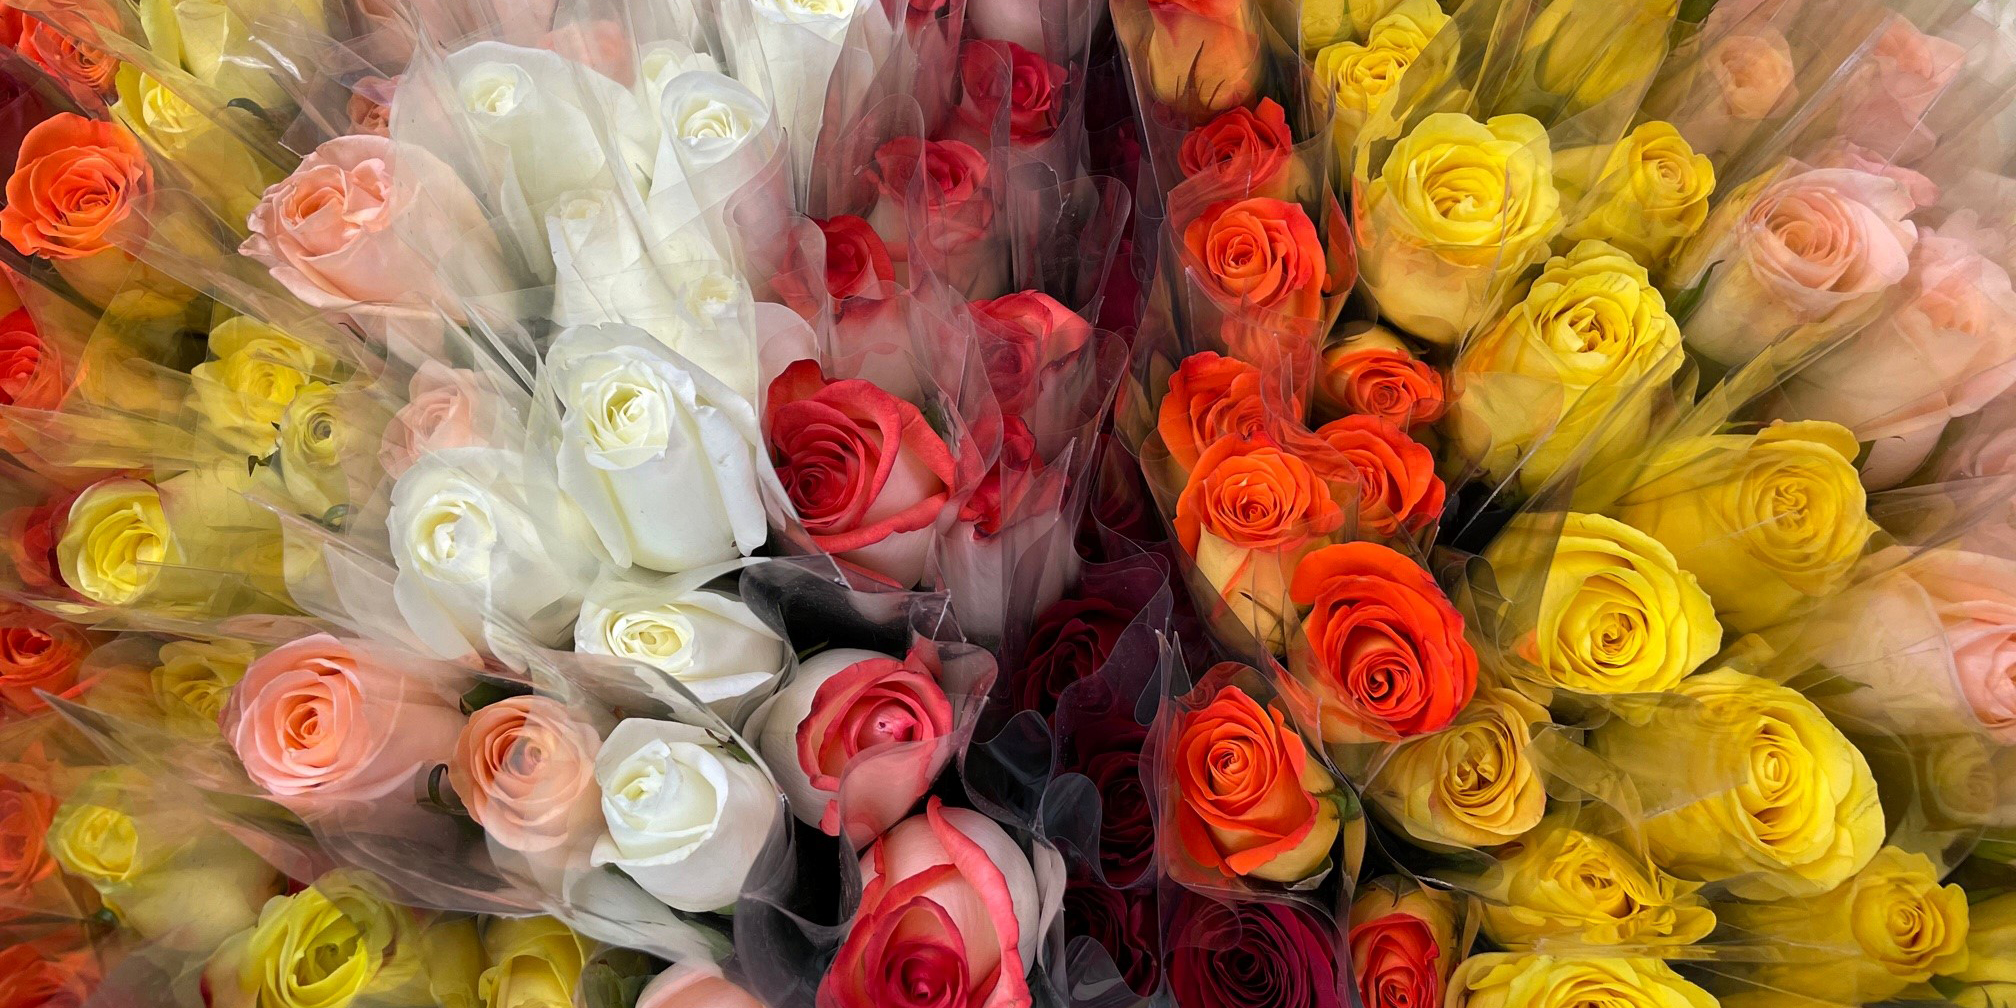 Nursing Home Flowers_1200x600.jpg